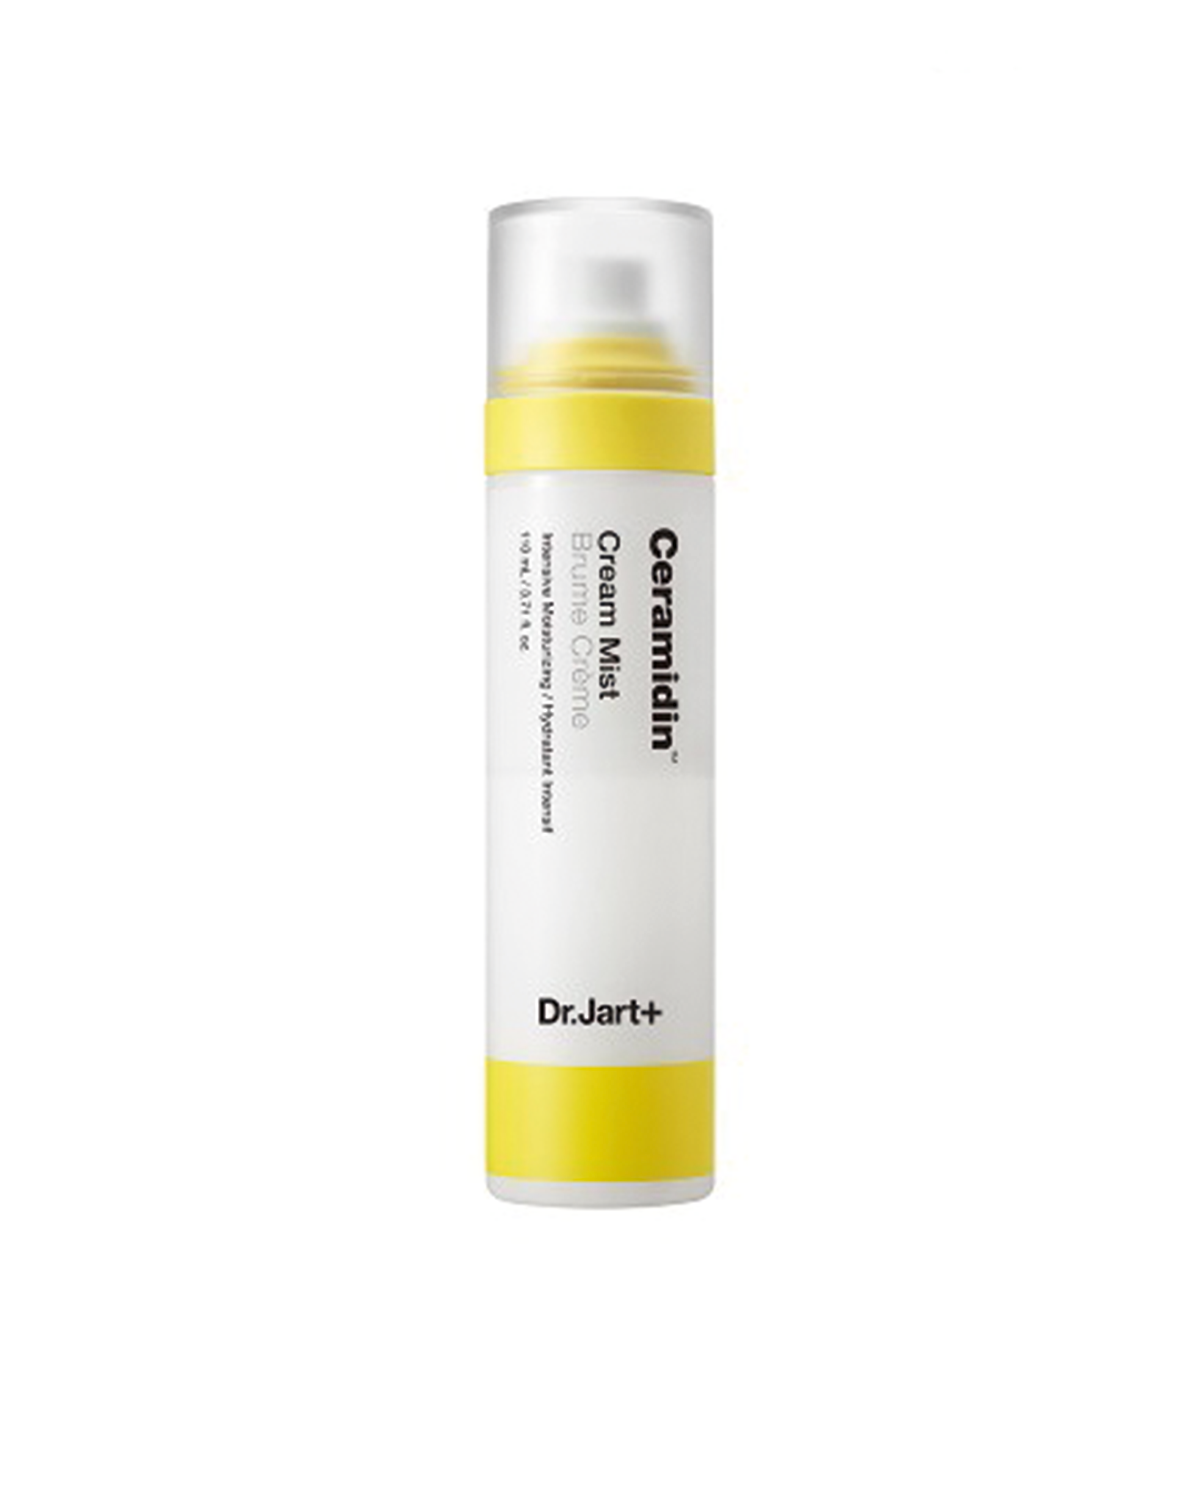 DR.JART+ Ceramidin Cream Mist 110 ml